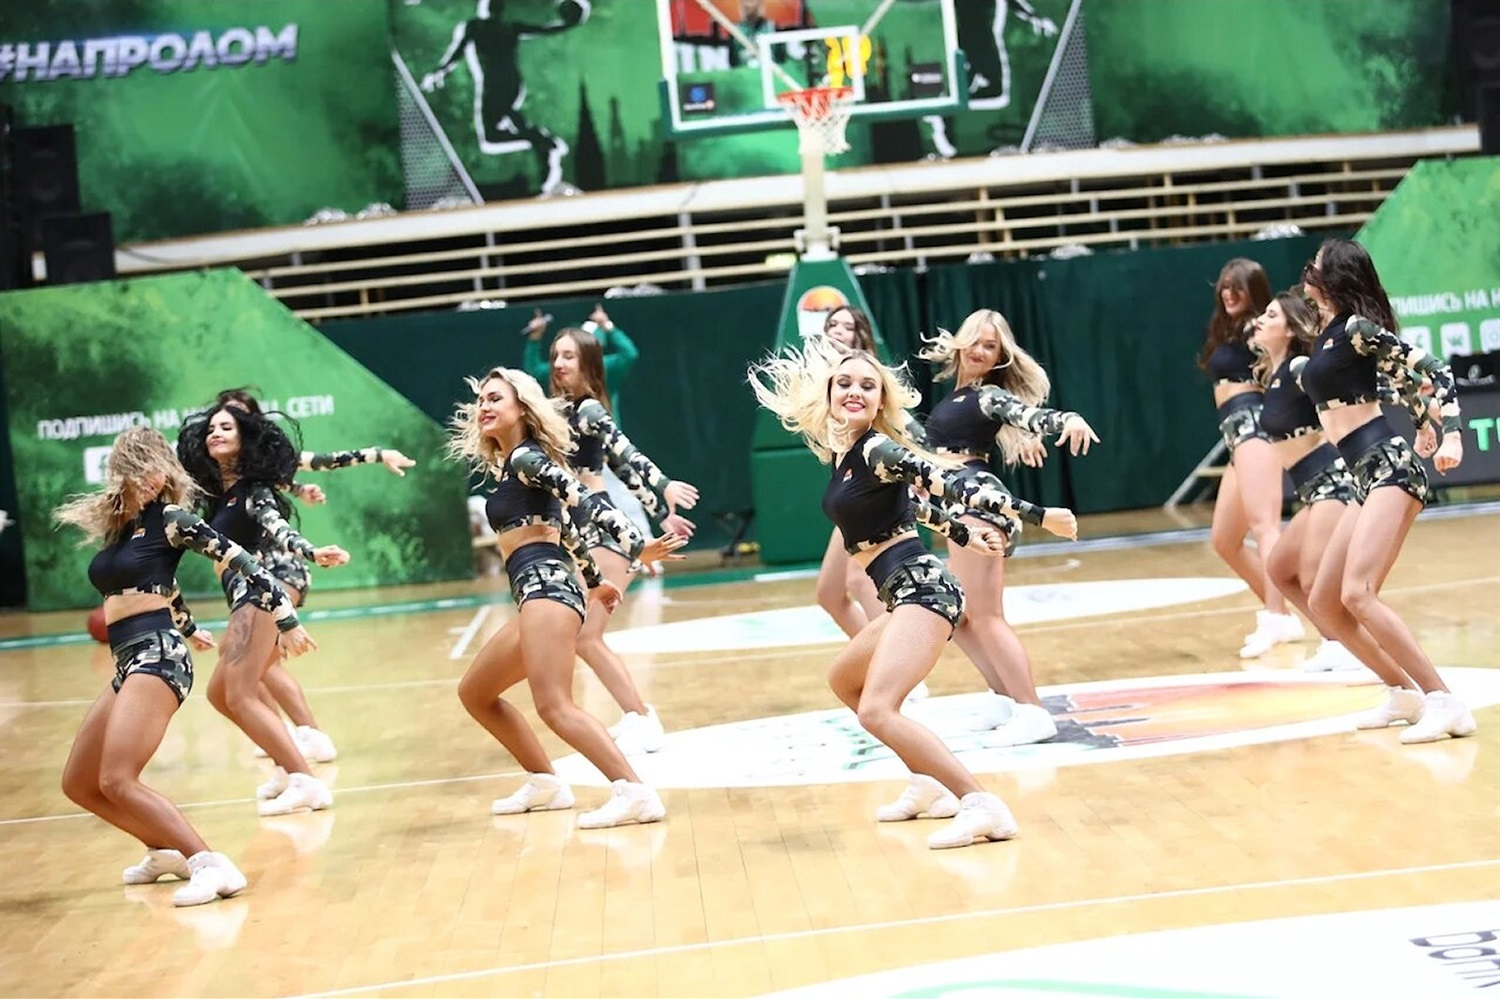 Cheerleaders - UNICS Kazan (photo UNICS) - EC18